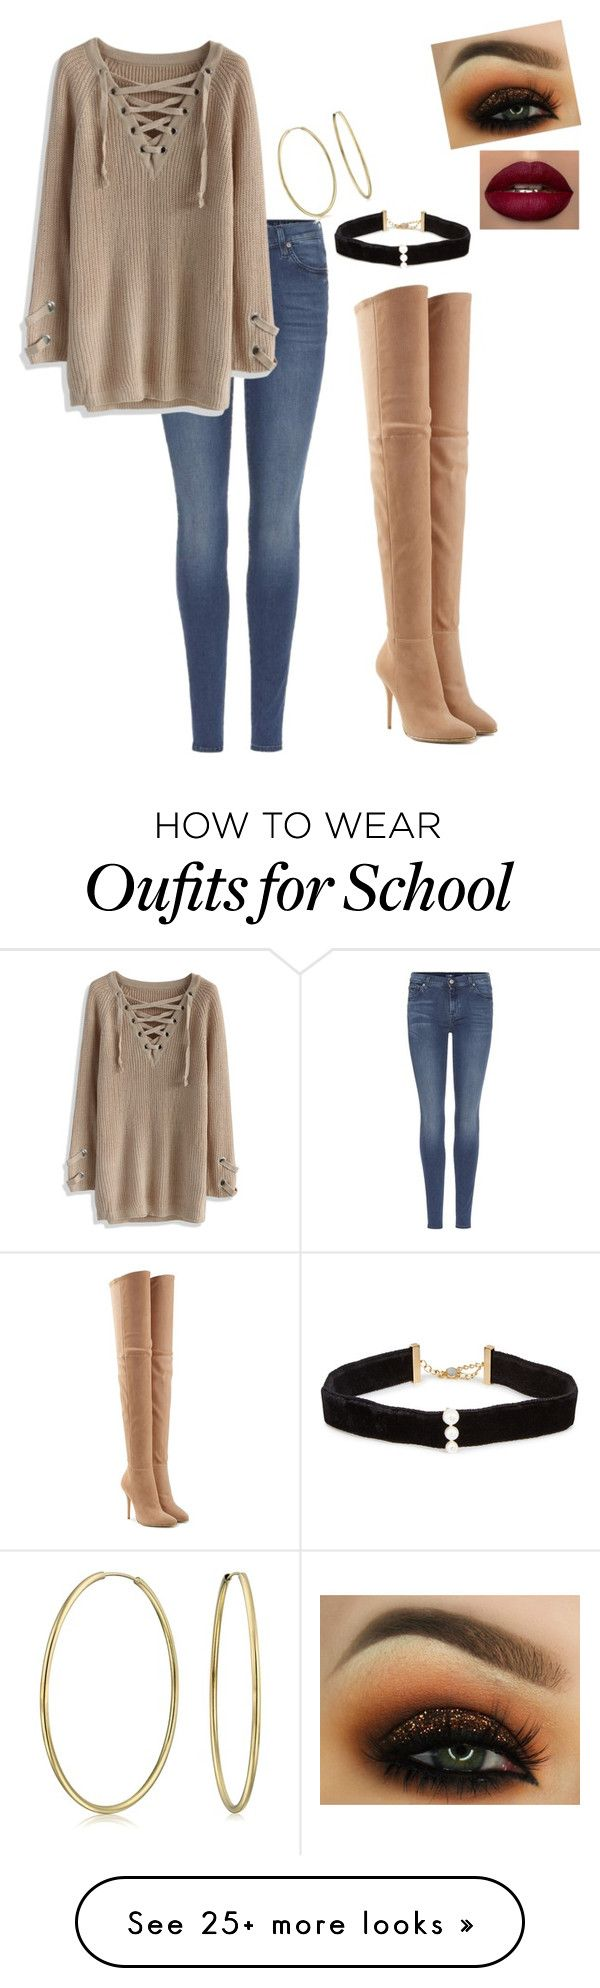 """OOTD for tomorrow: last day of school and finals before Xmas break"" by vireheart on Polyvore featuring 7 For All Mankind, Balmain, Anissa Kermiche, Chicwish and Bling Jewelry"